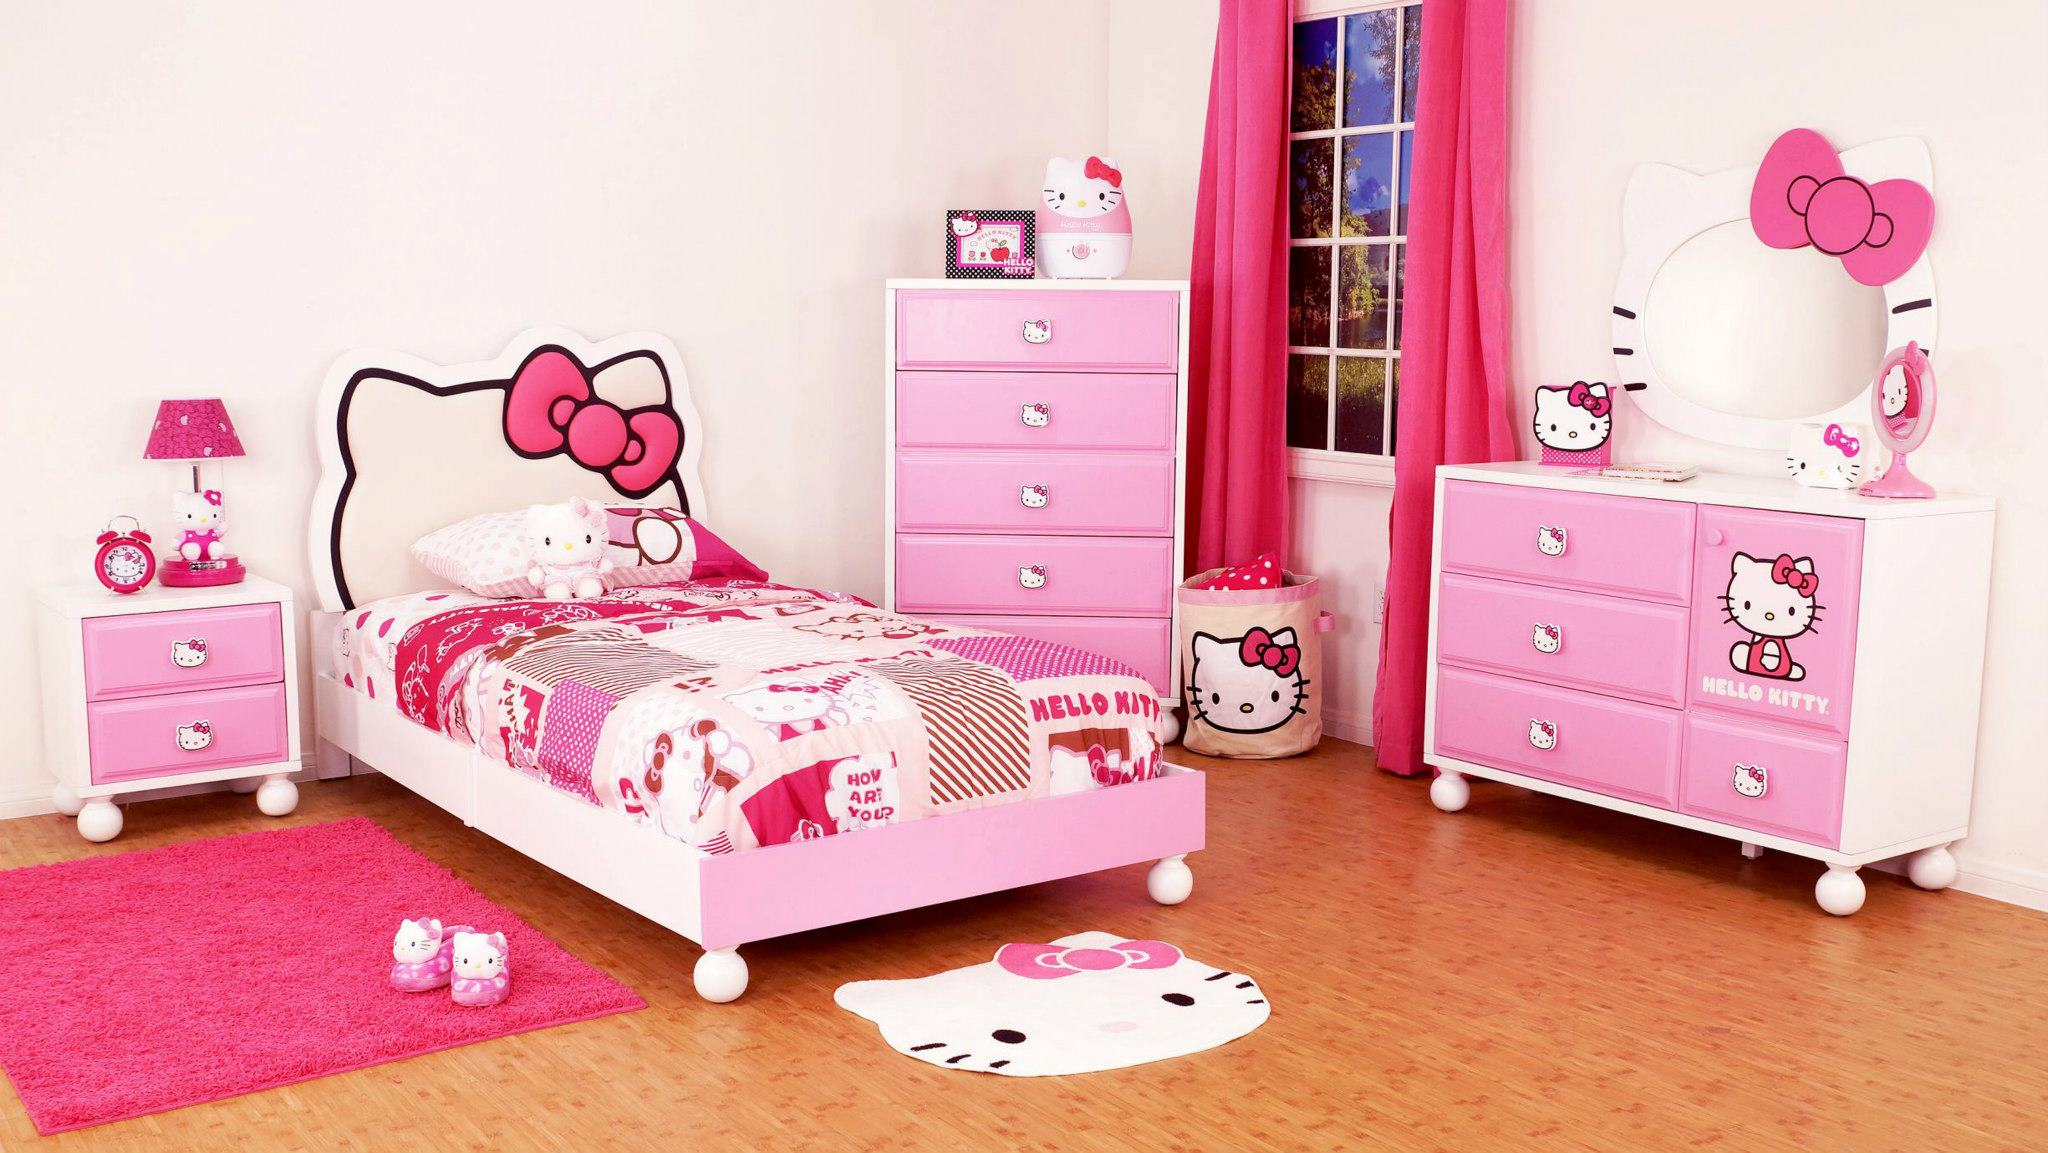 Bedroom ideas for girls hello kitty - View In Gallery Hello Kitty Theme Kids Bedroom Interior Design